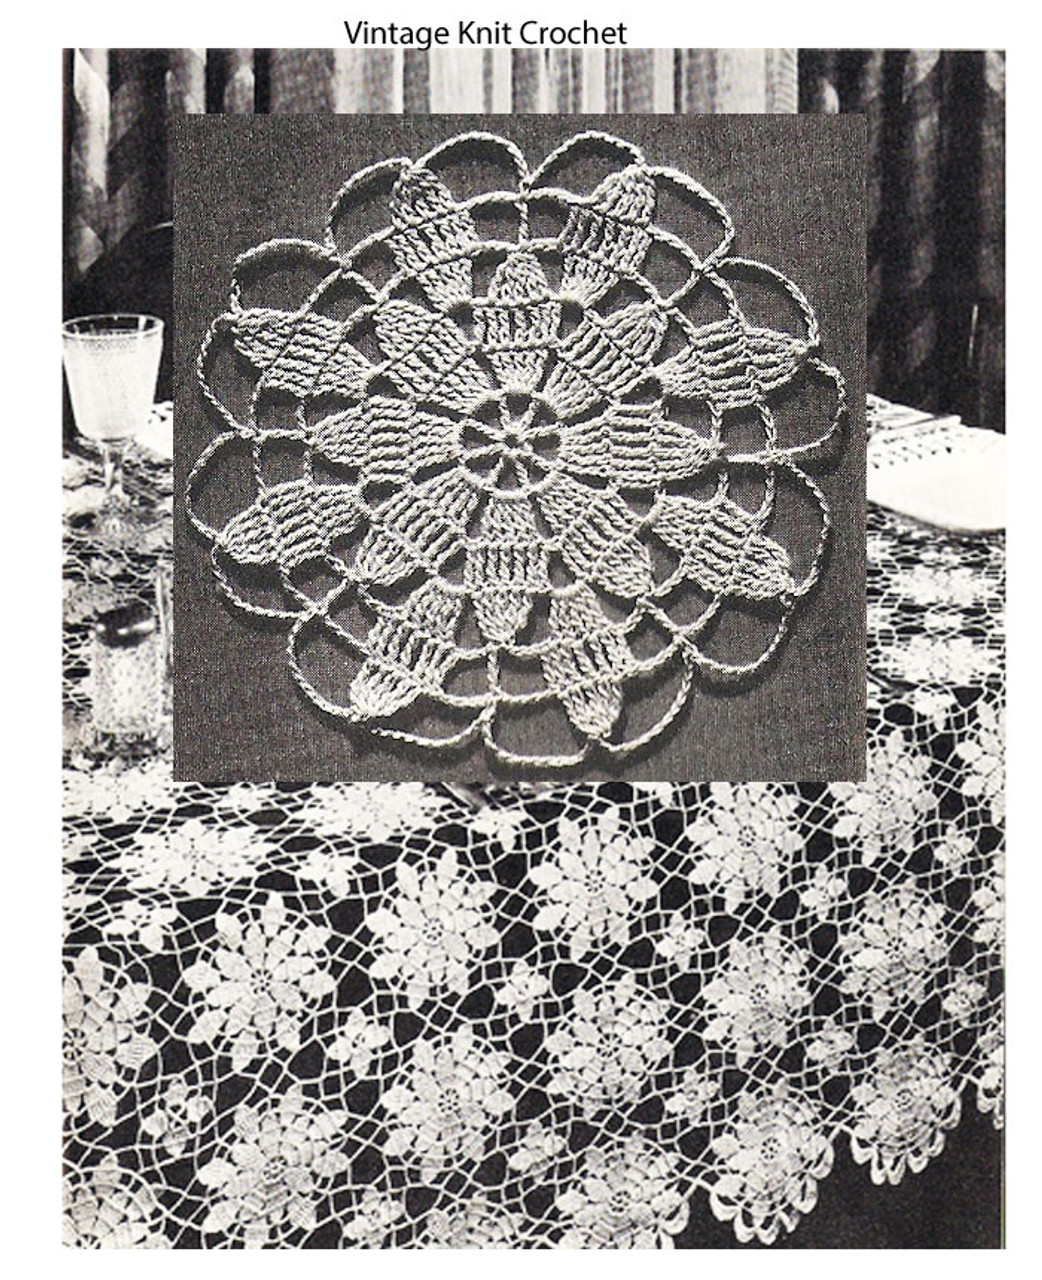 Vintage Crochet Tablecloth Pattern, Queen Anne Lace